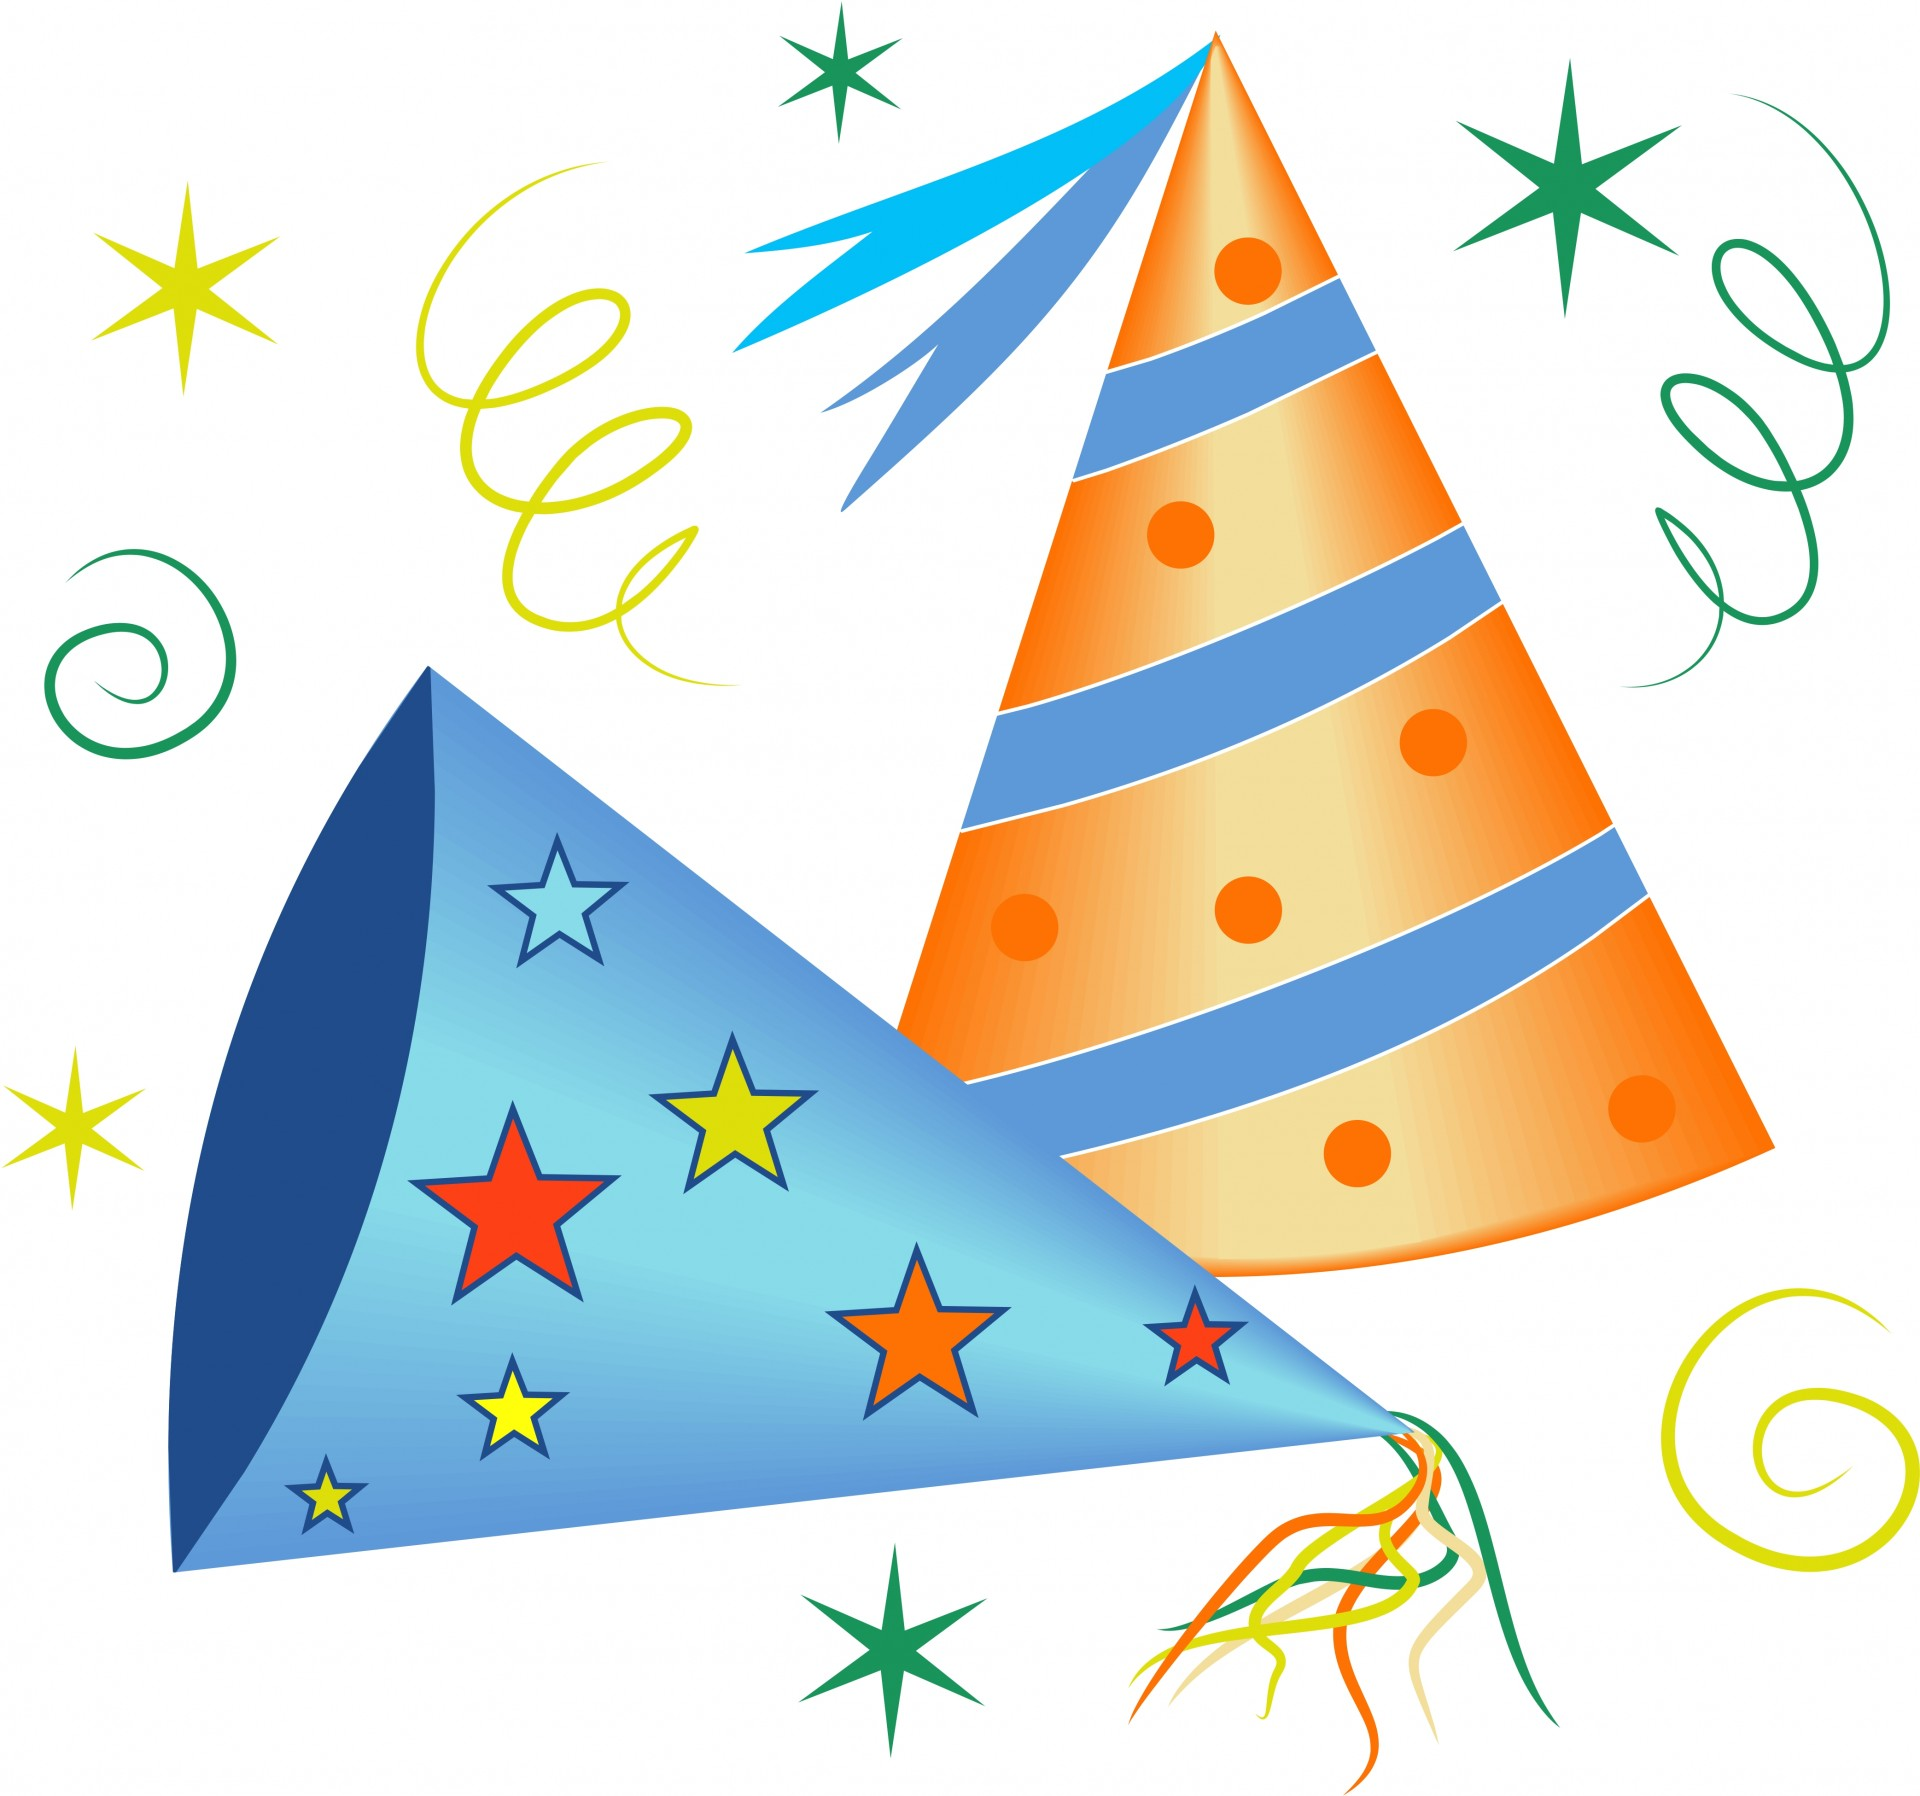 Celebrate clipart party. Celebration hats free stock